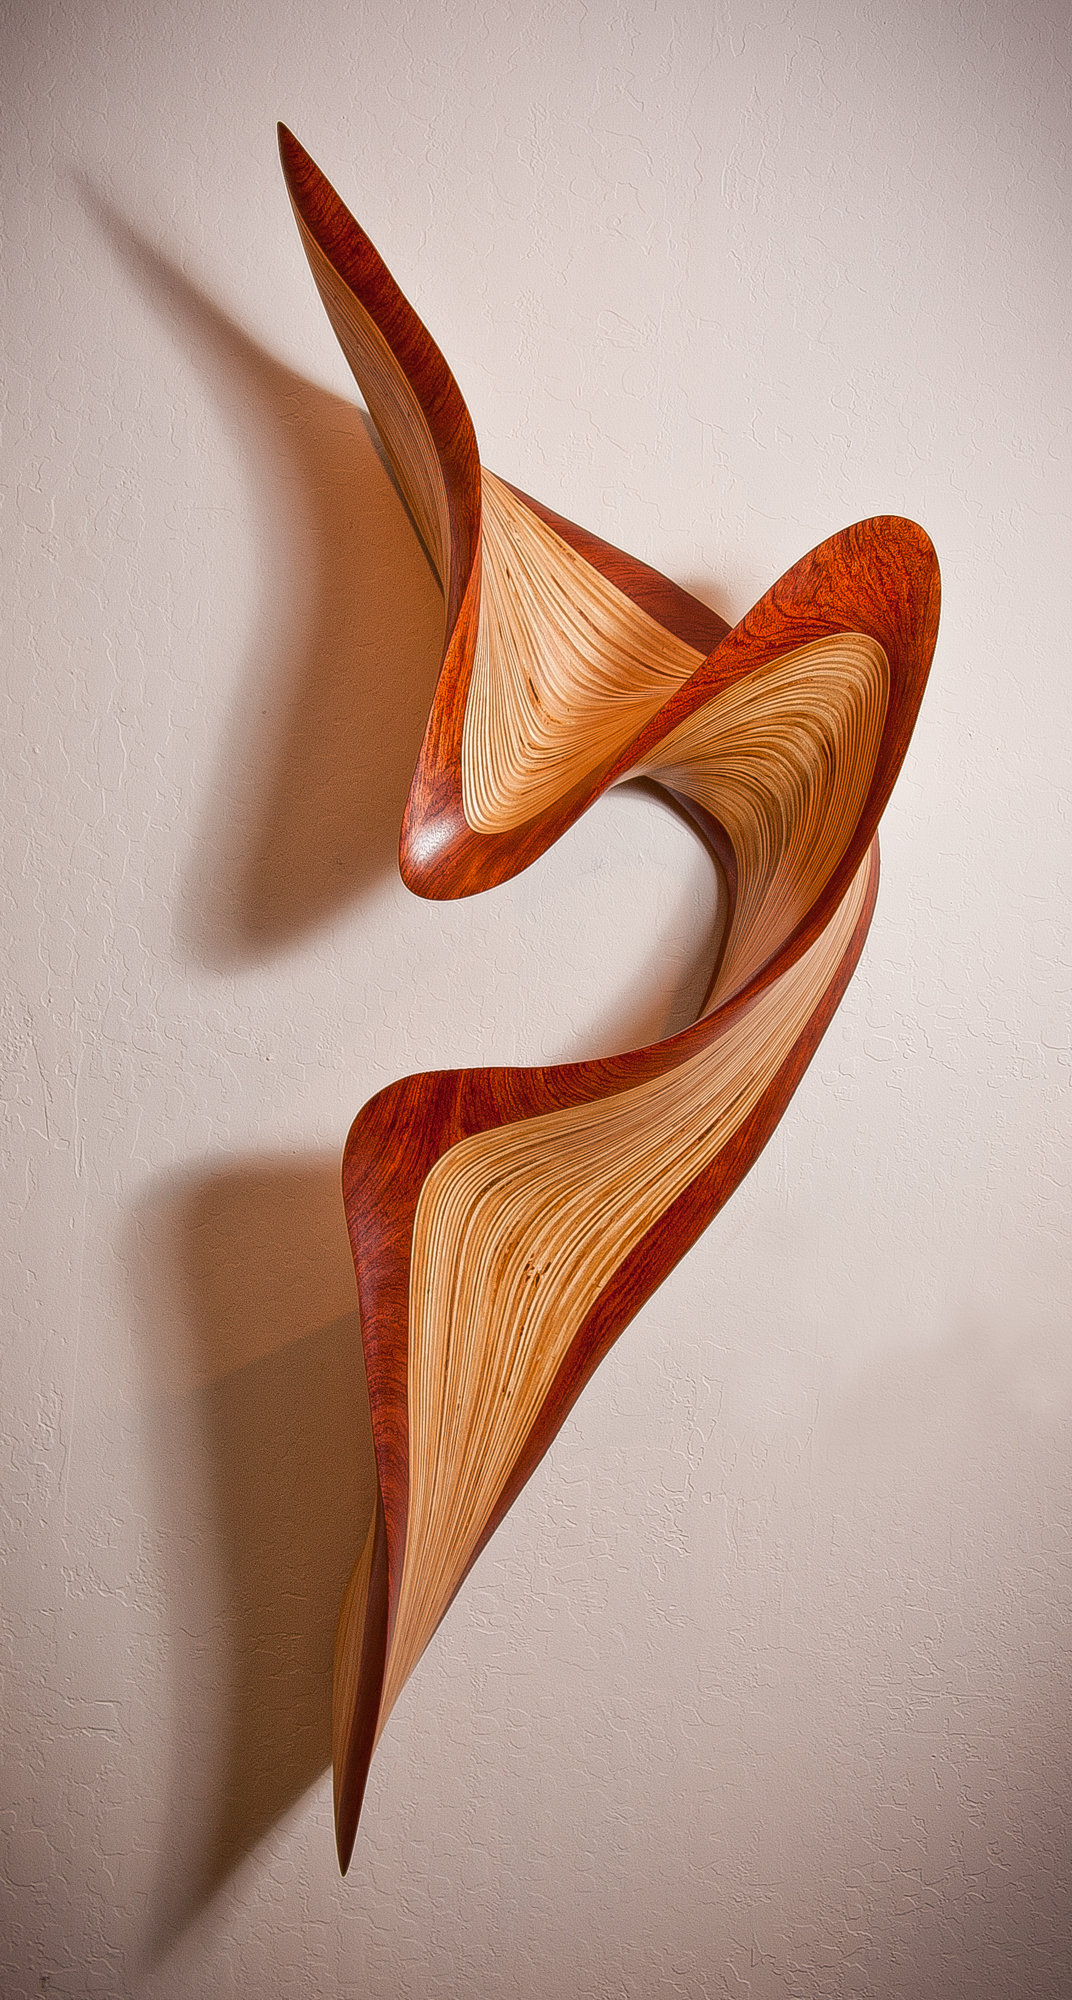 Jive by kerry vesper wood wall sculpture artful home - Sculpture wall decor ...